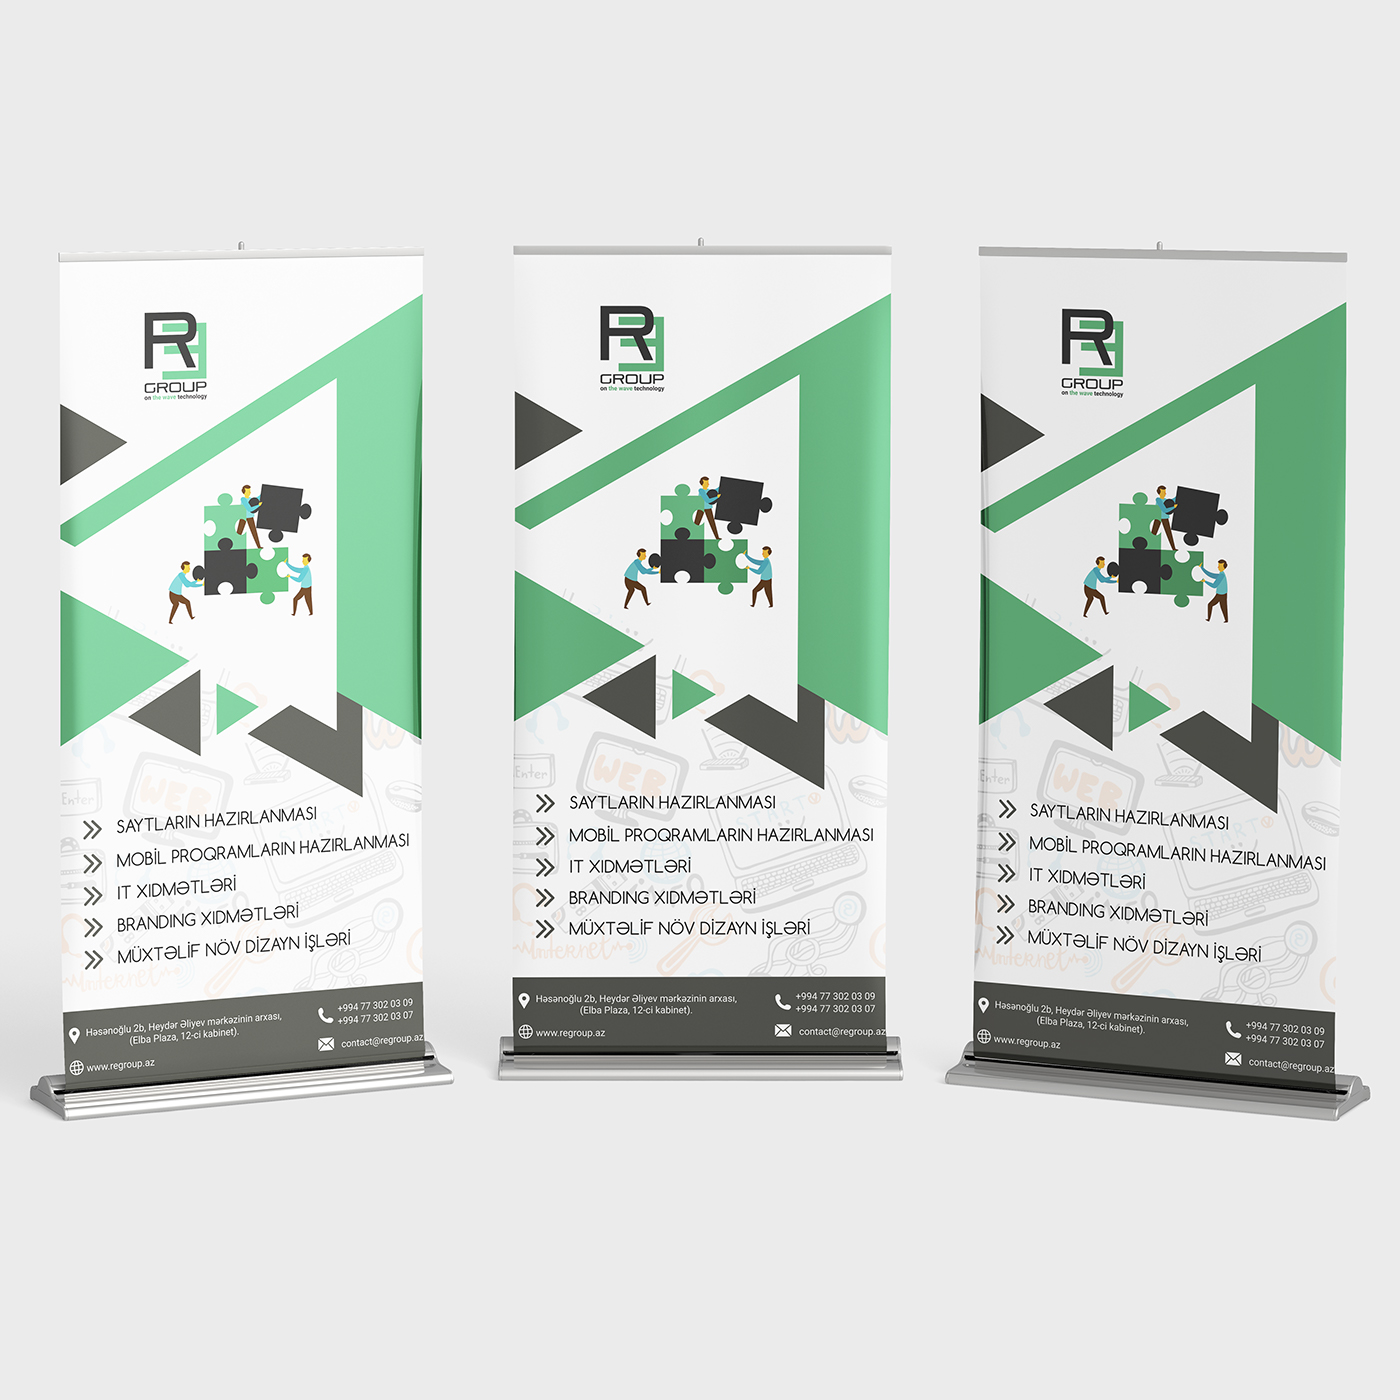 Roll-up design for REgroup company